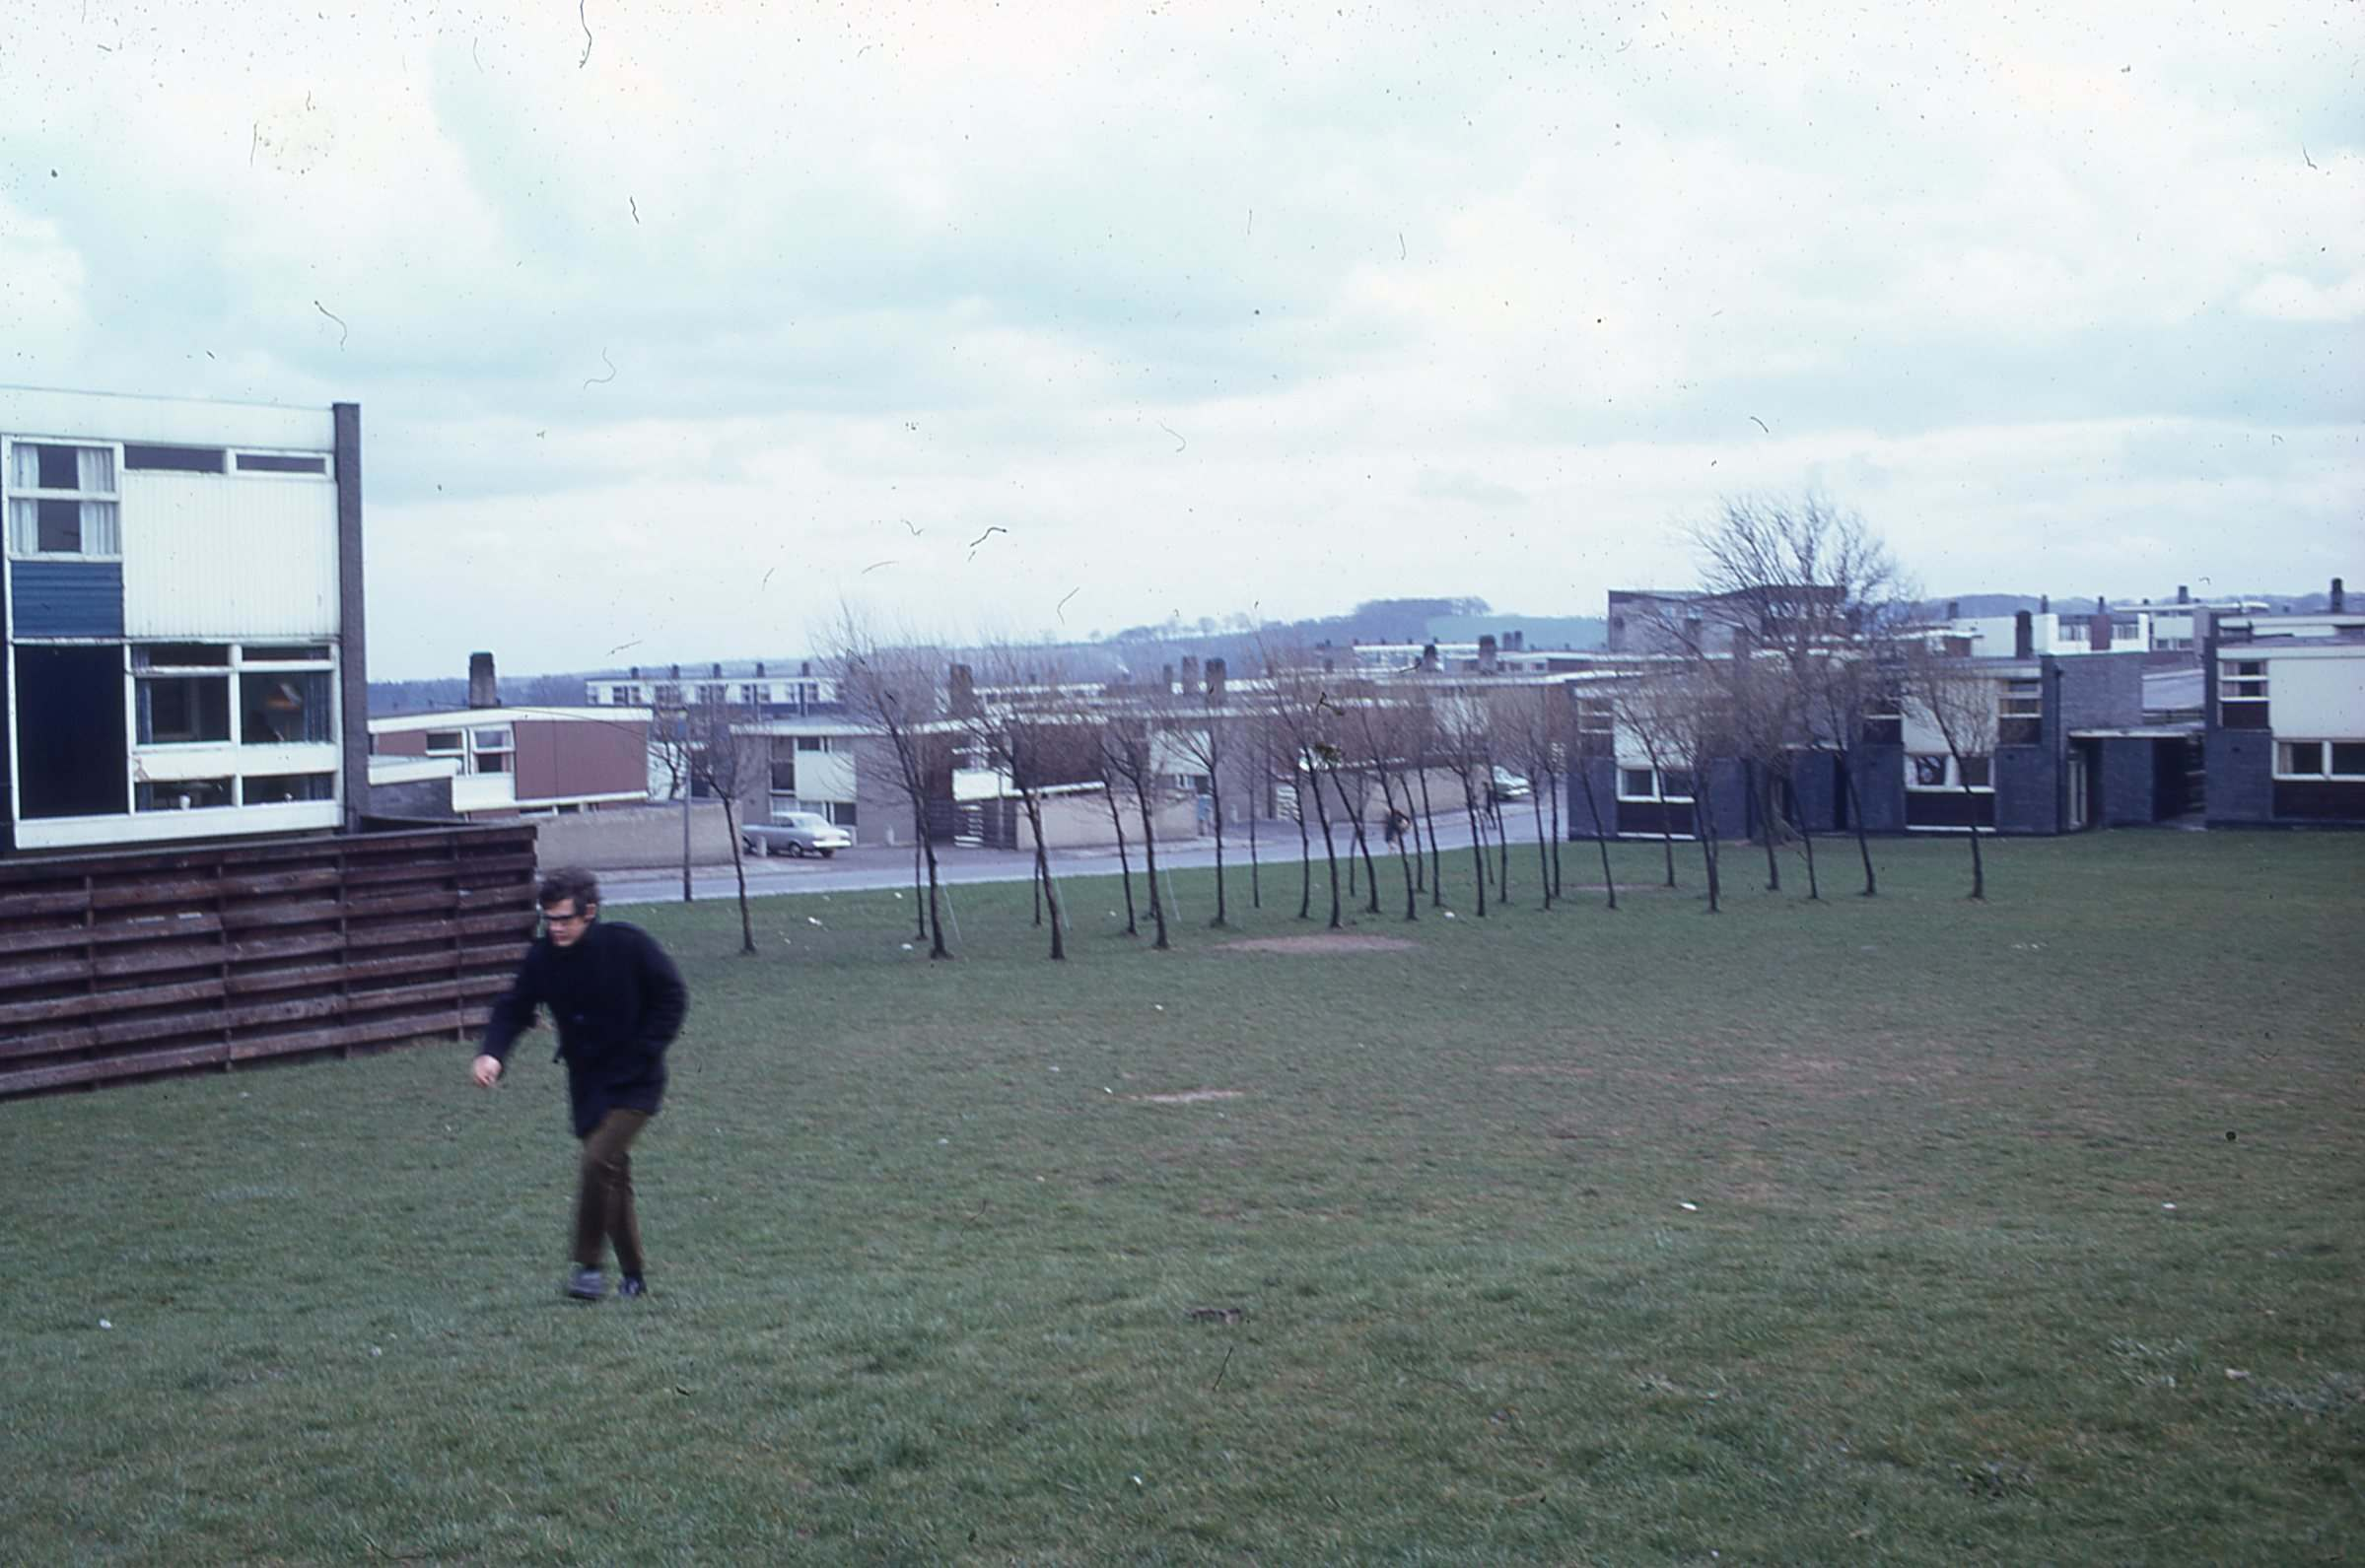 Housing designed by architect Victor Pasmore around 1970 in Peterlee 3